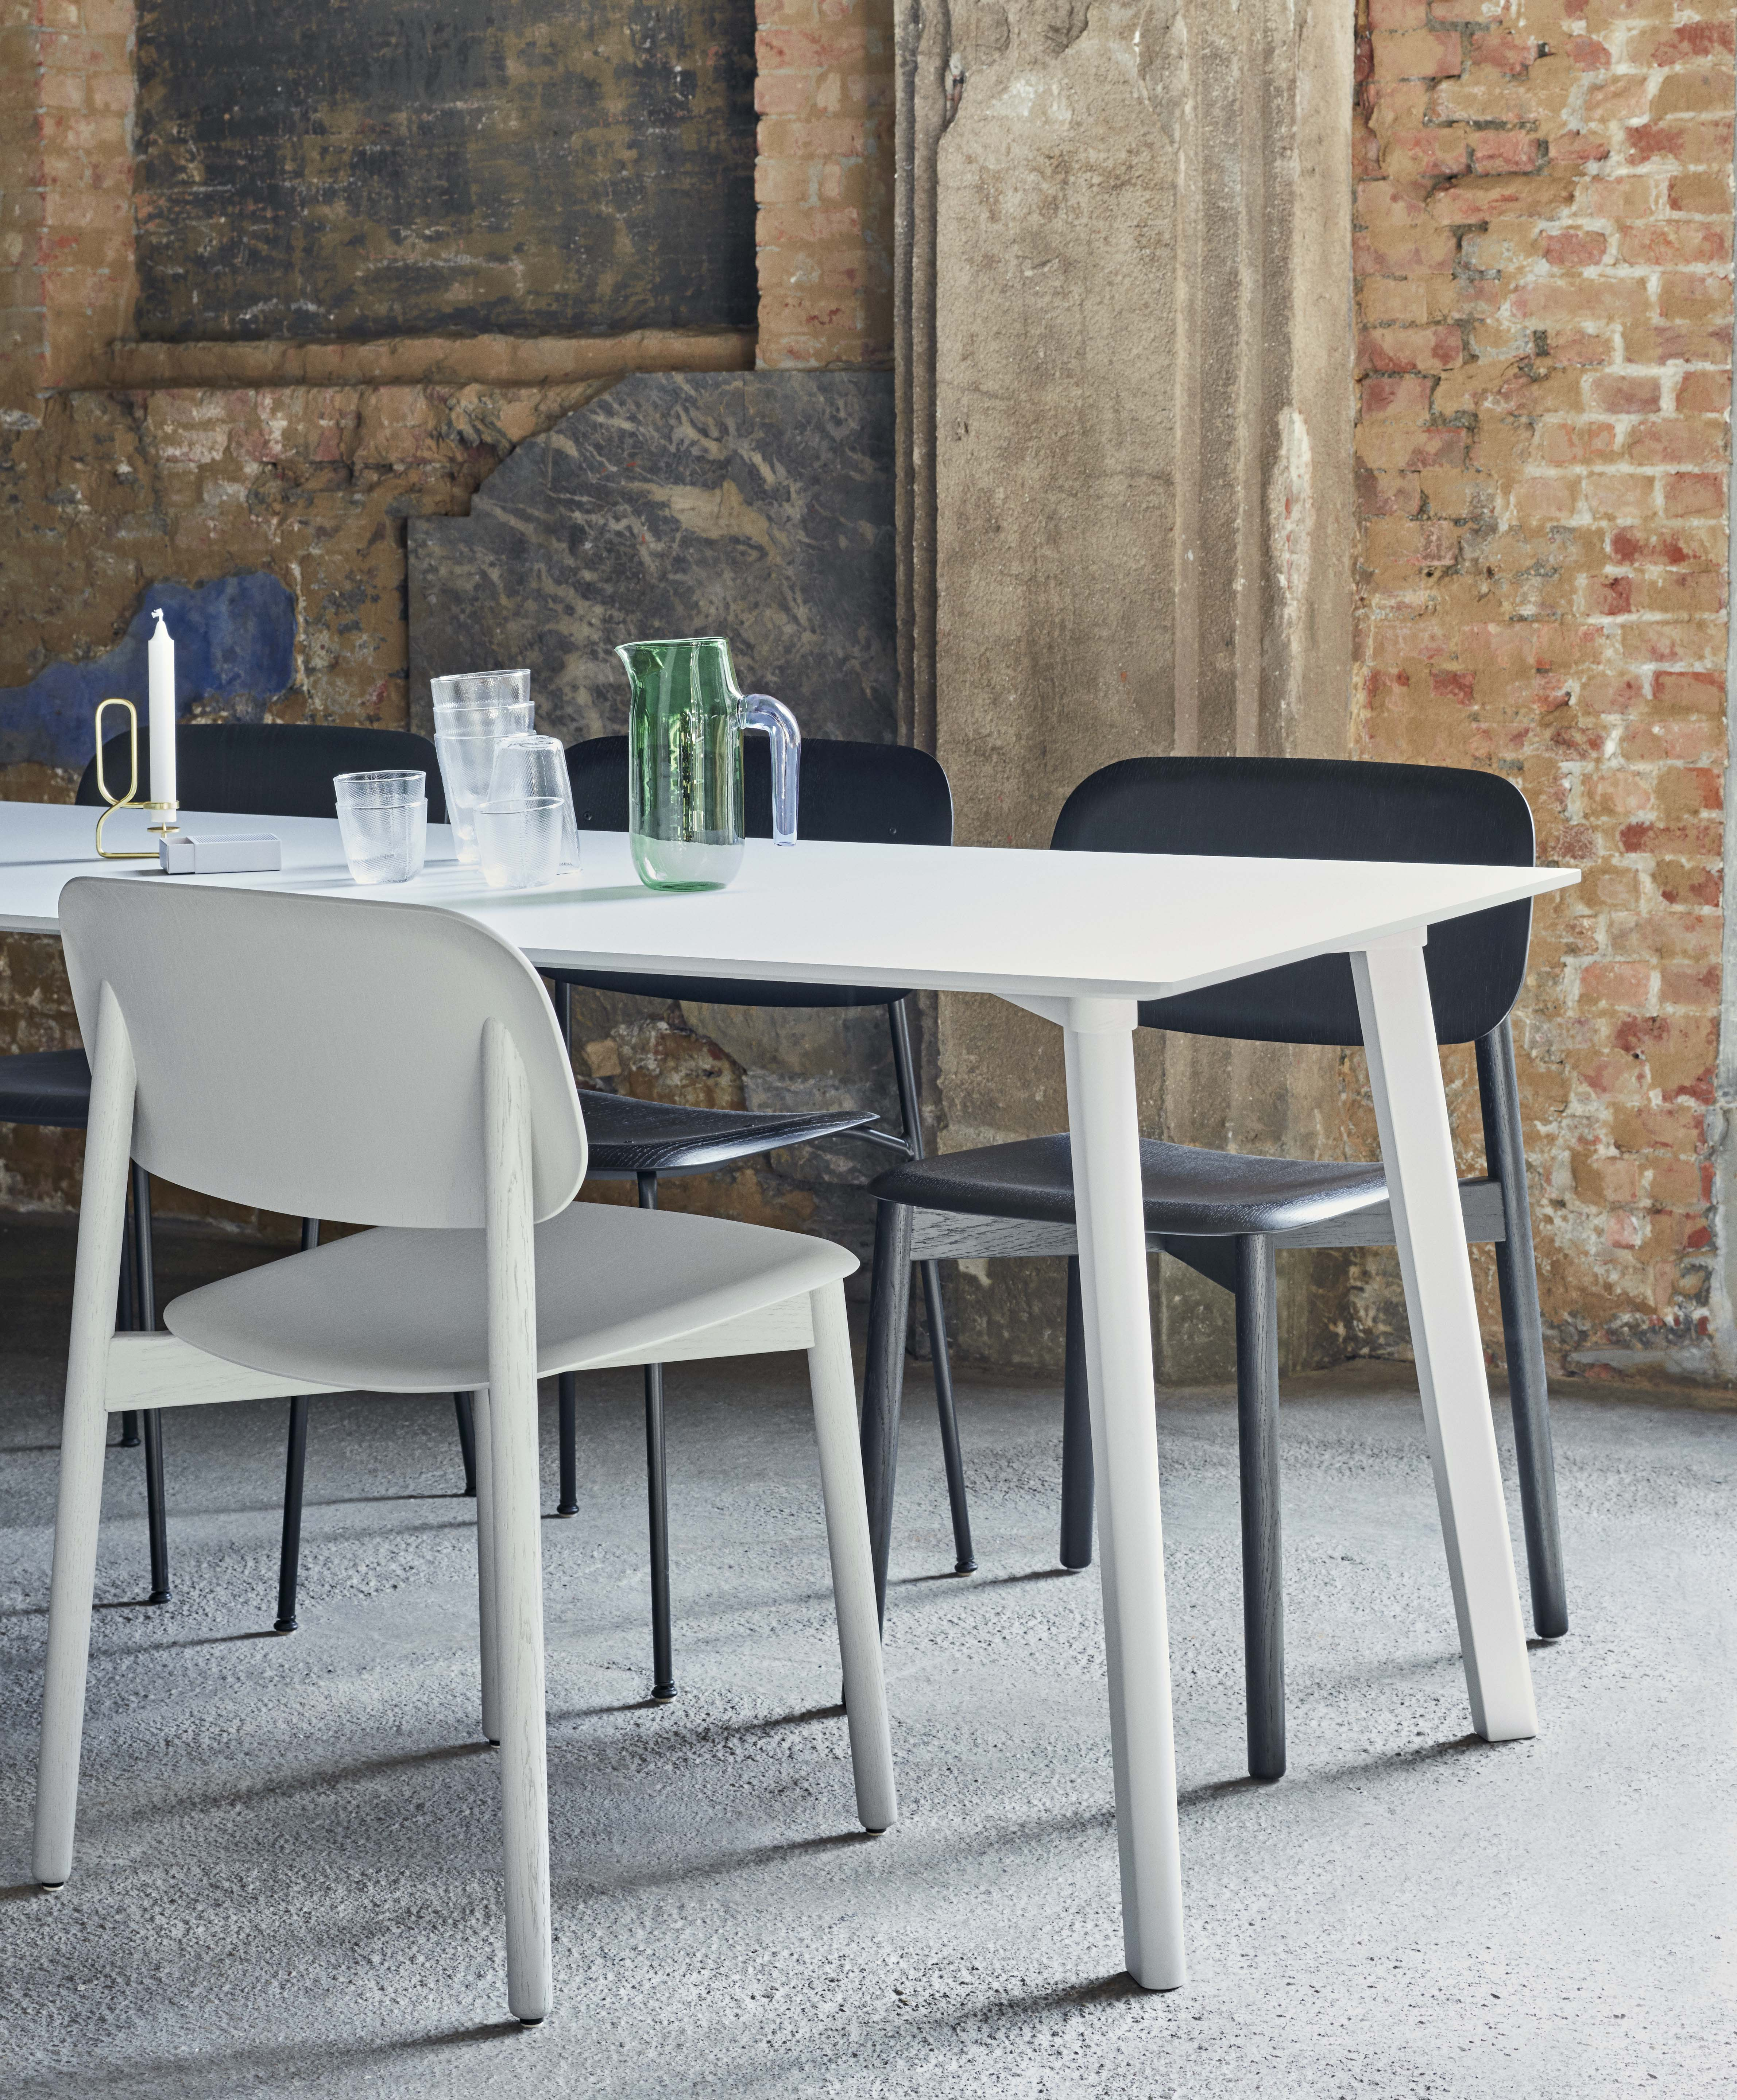 Hay soft edge chairs design iskos berlin for Scandic design